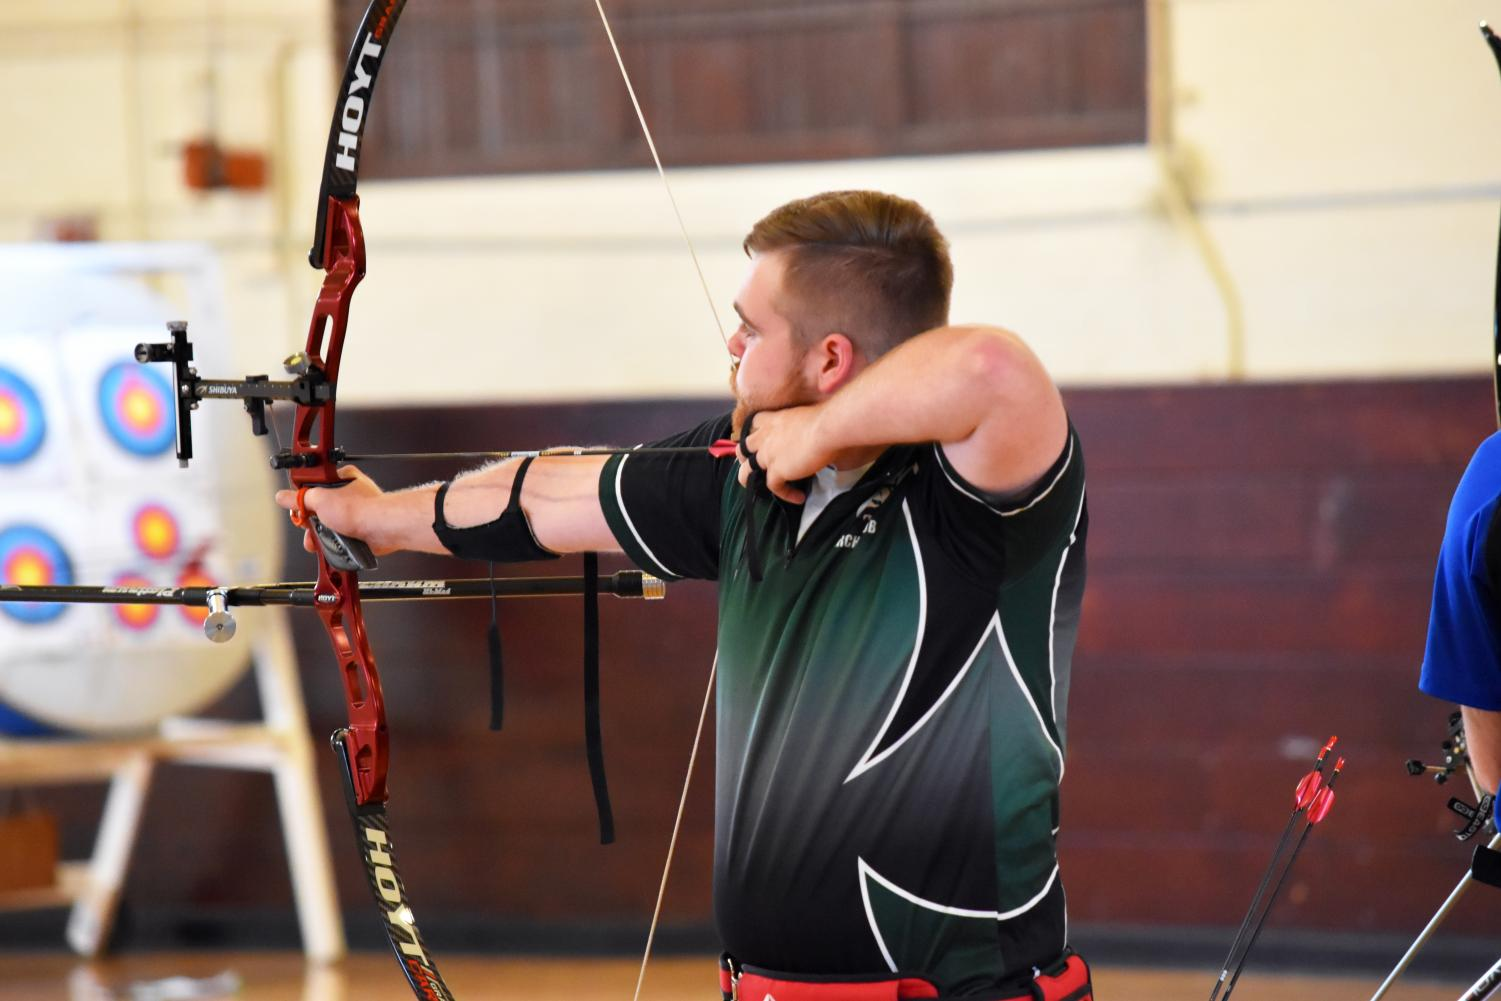 More than 100 archers from across the region competed in the Archery Club's first event of the year.